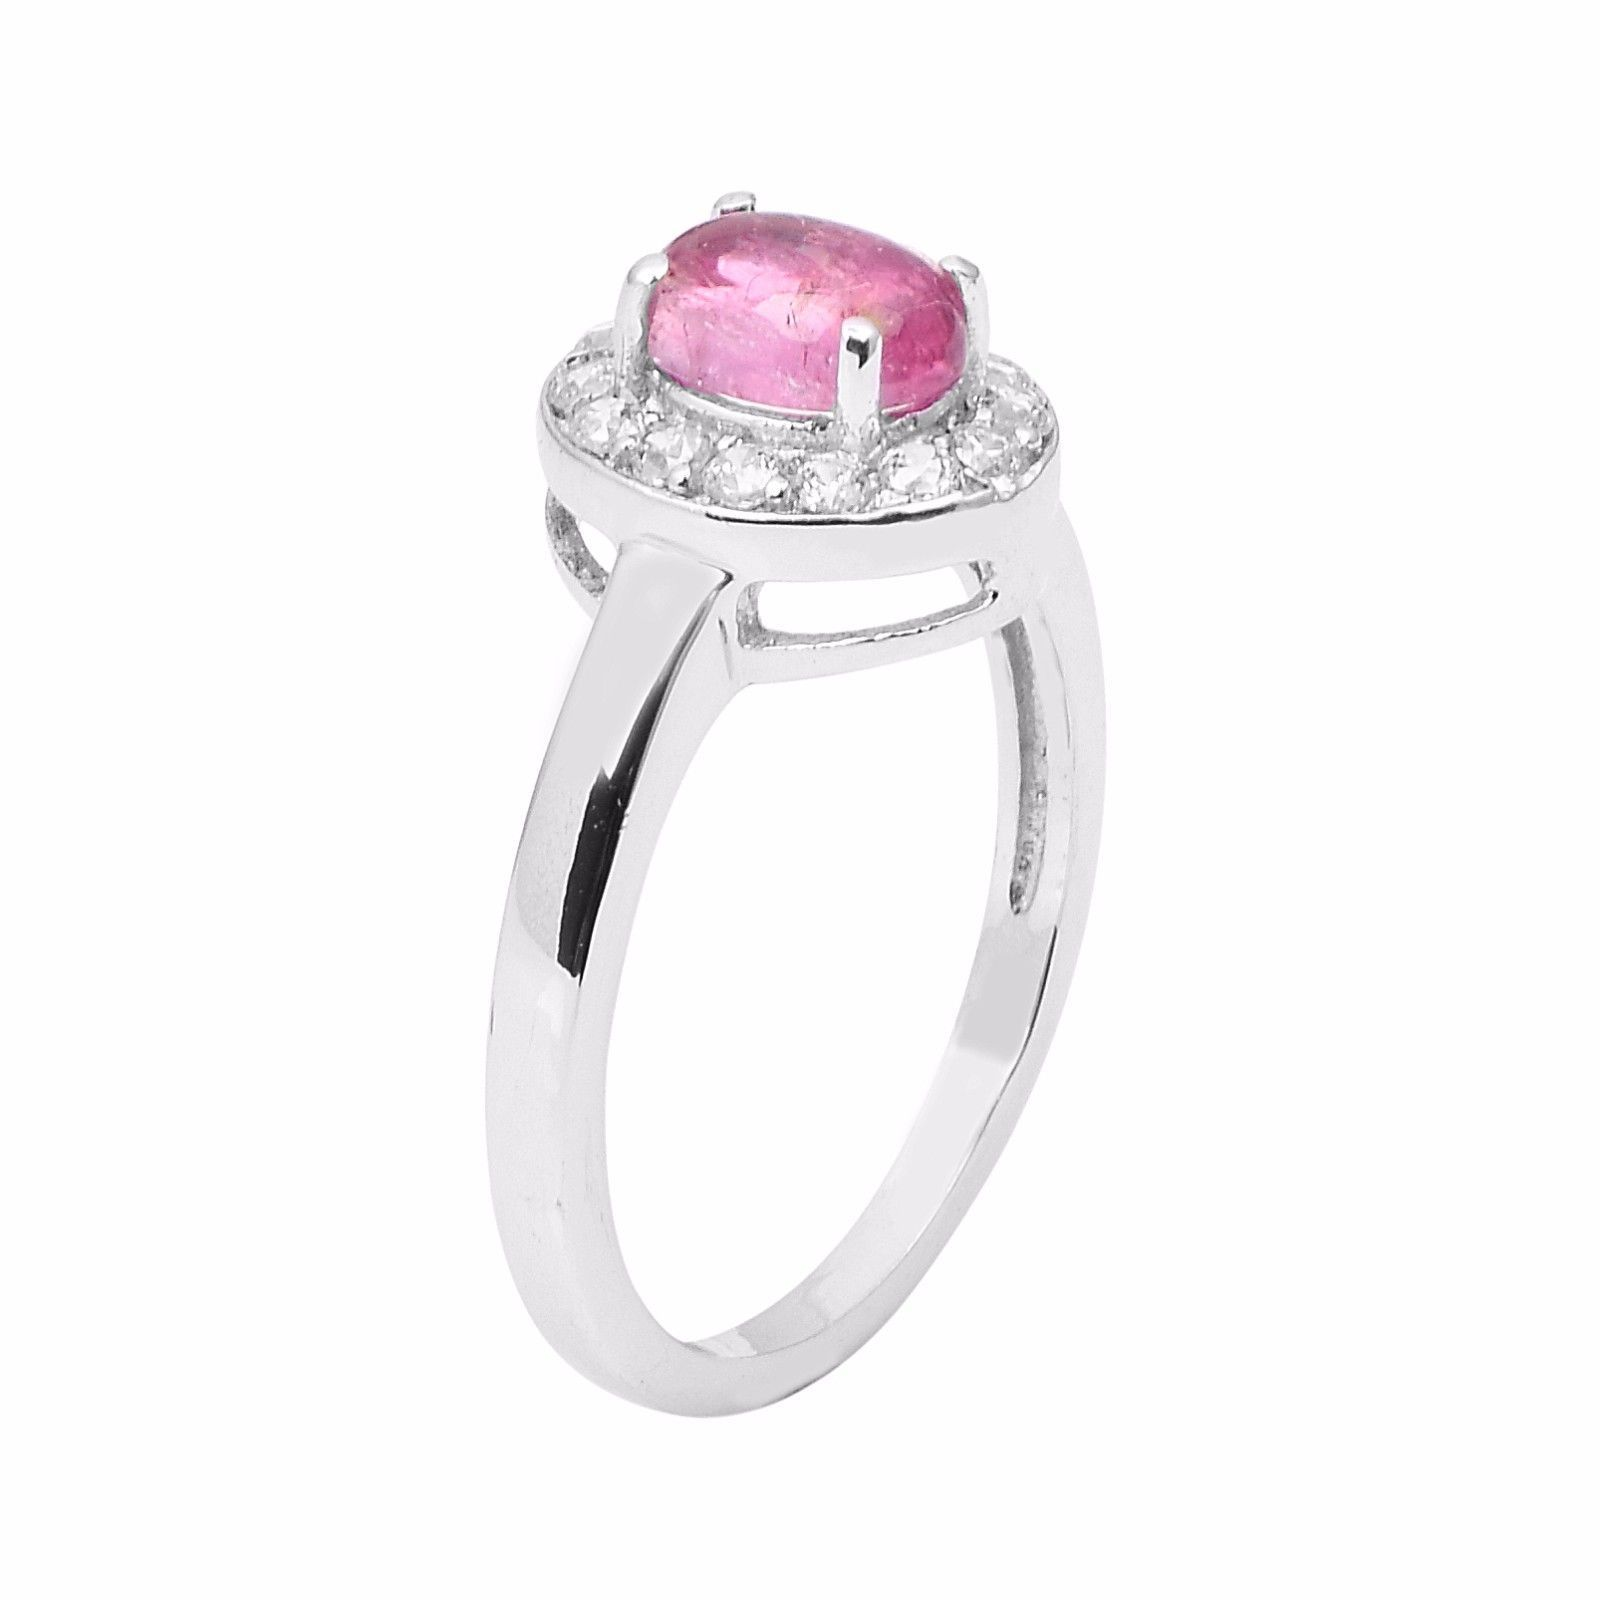 Women Engagement Special Jewelry Pink Tourmaline Stone Silver Ring Sz9 SHRI0912